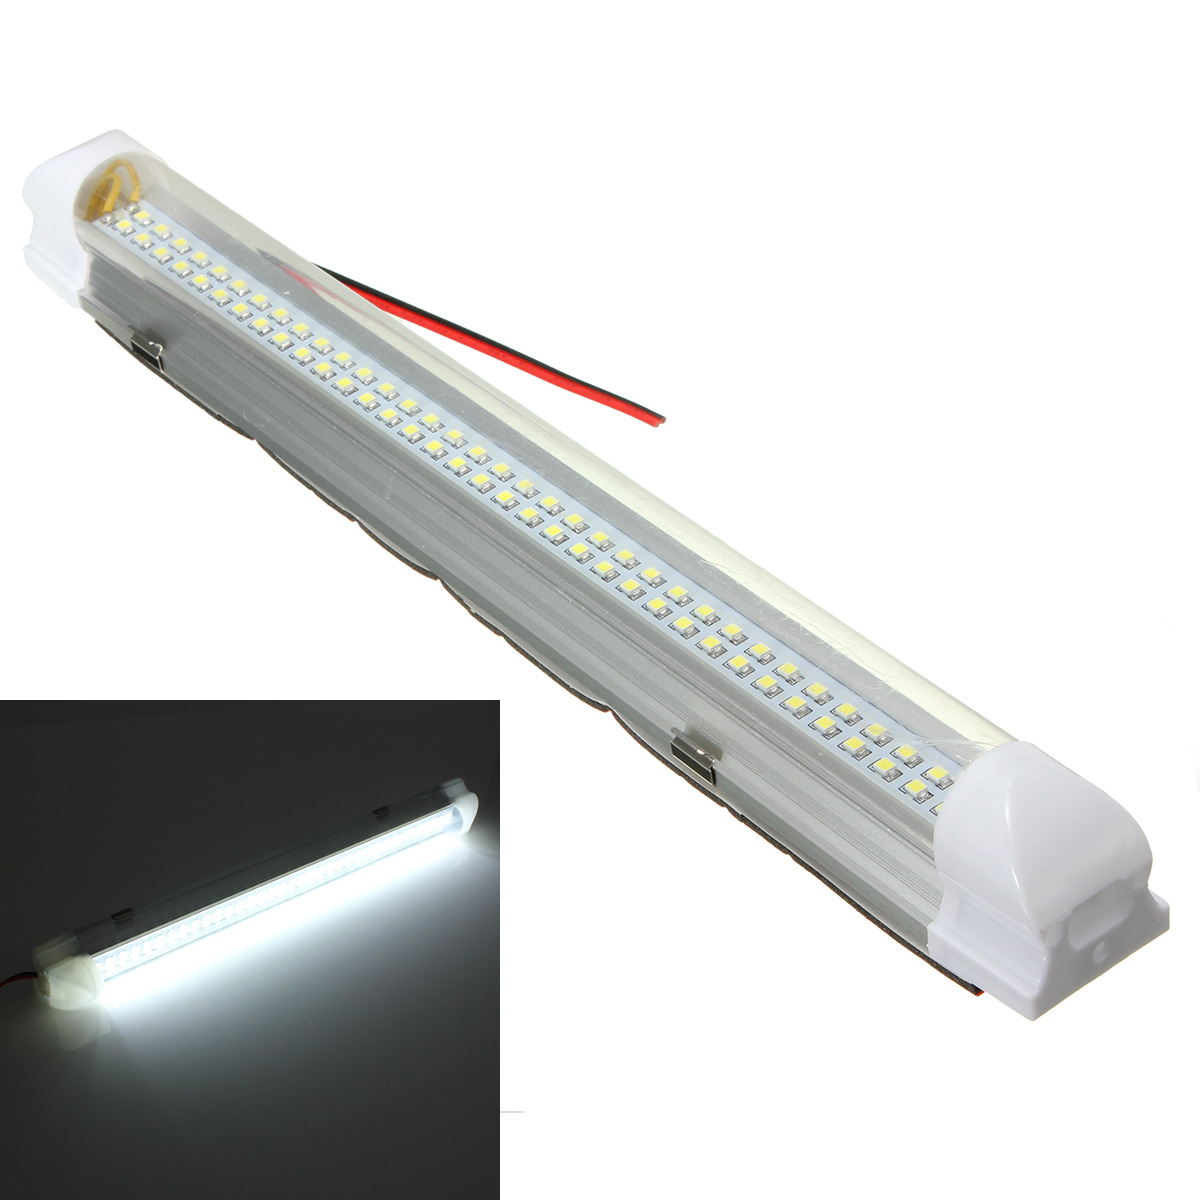 Universal Car Auto Caravan Interior 72 LED White Light Strip Lamp ON/OFF Switch dongzhen car led external reading light dome festoon light interior light xenon car styling automobiles blue white universal